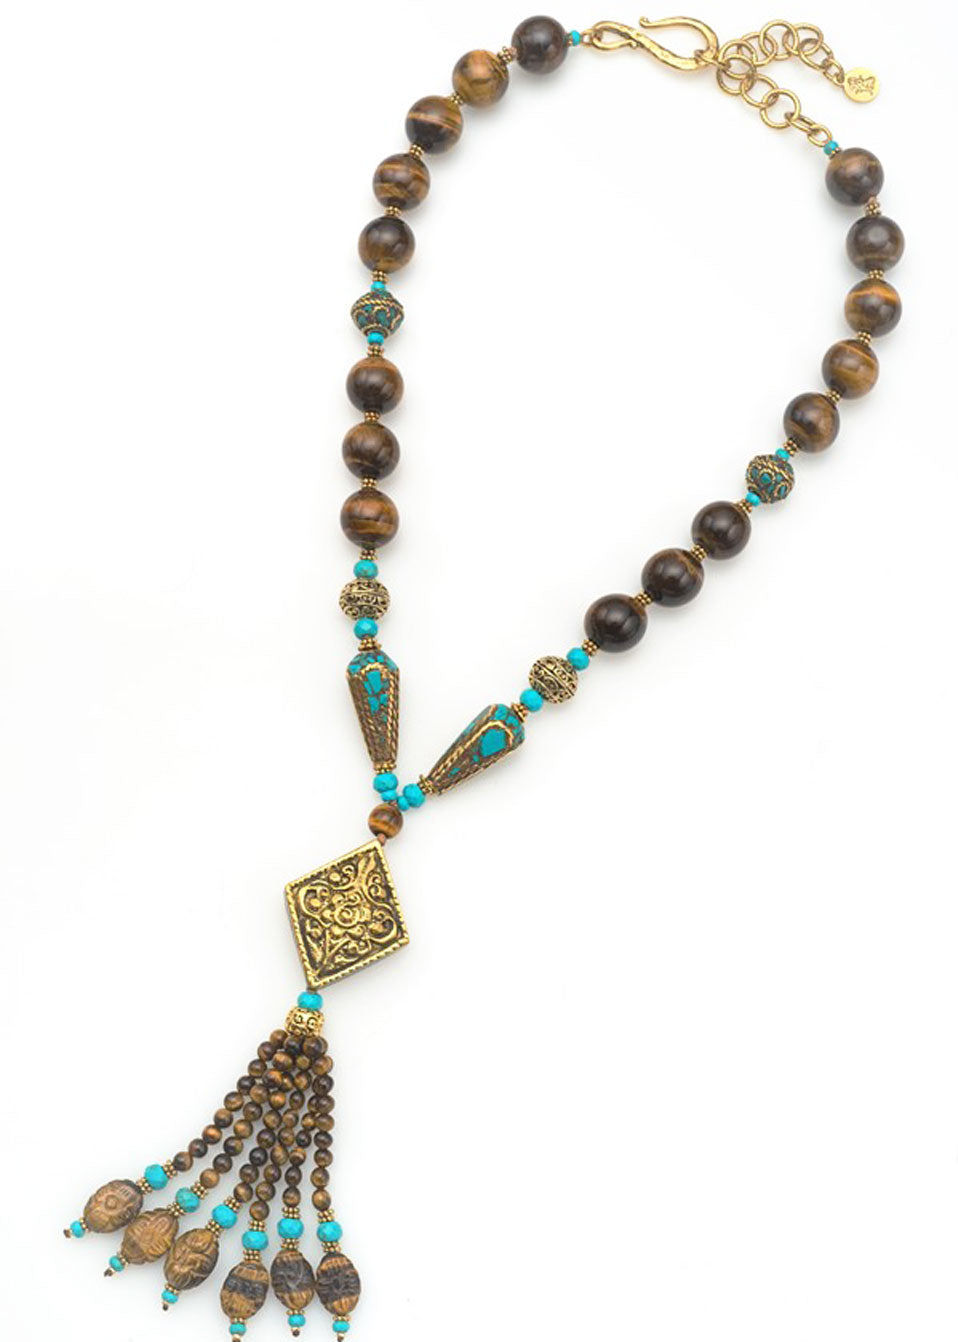 Tibetan Brass & Tigers Eye Necklace